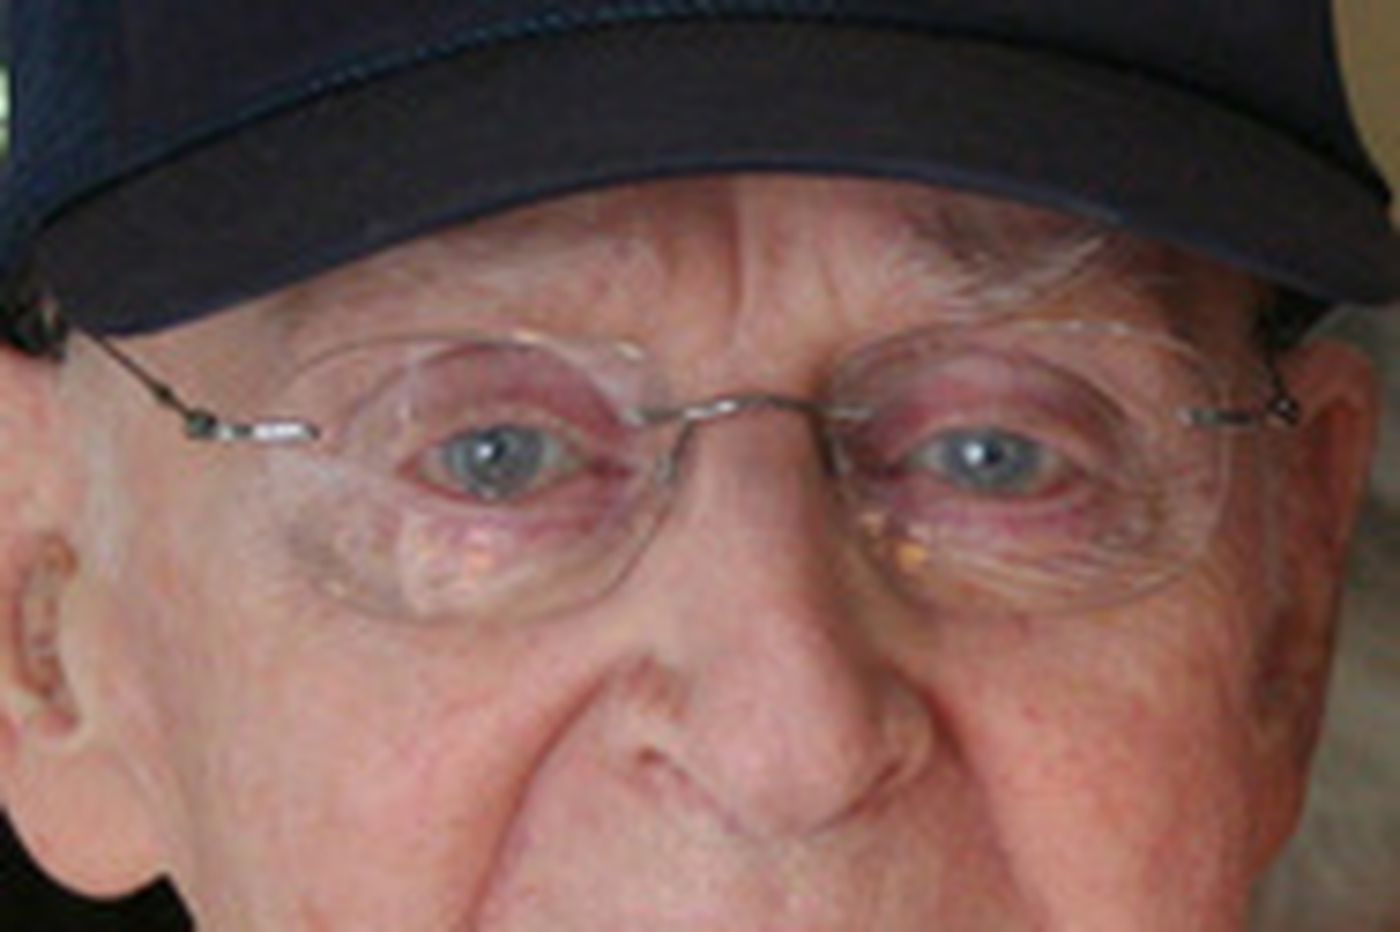 Sherwood V. Cohen | Ophthalmologist, 71